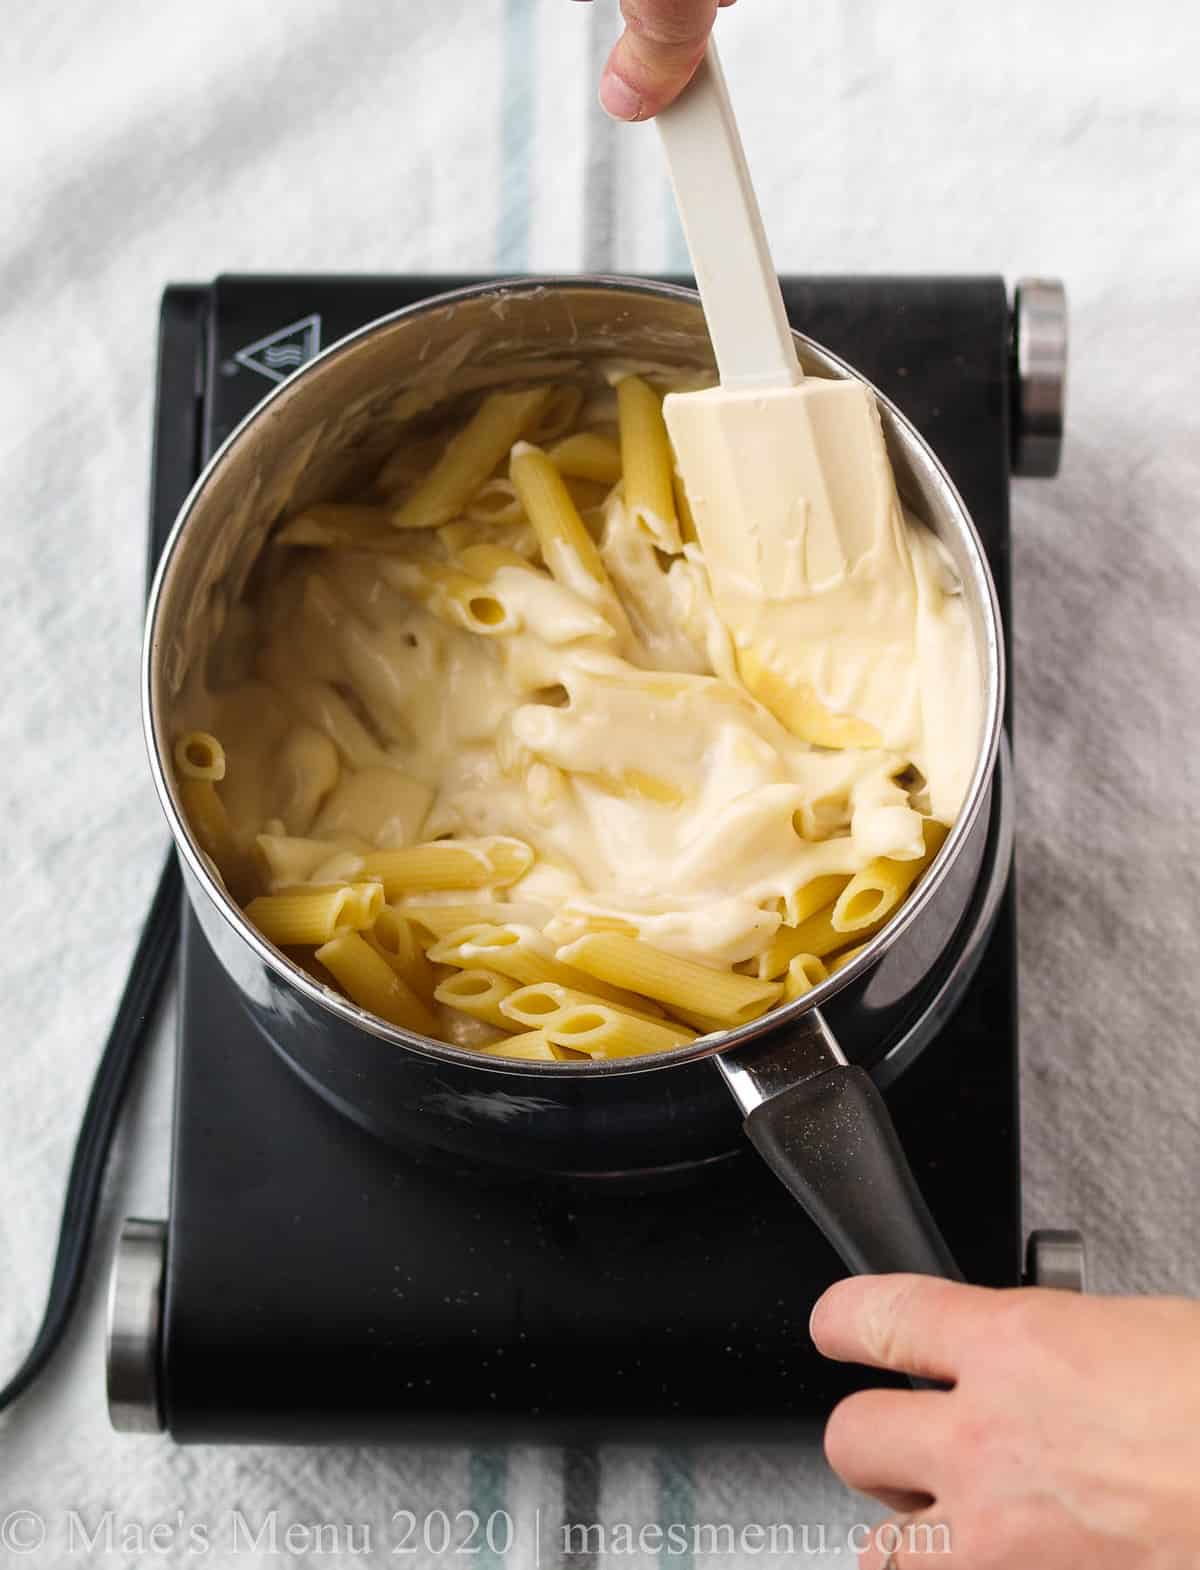 Fold the pasta into the cheese sauce